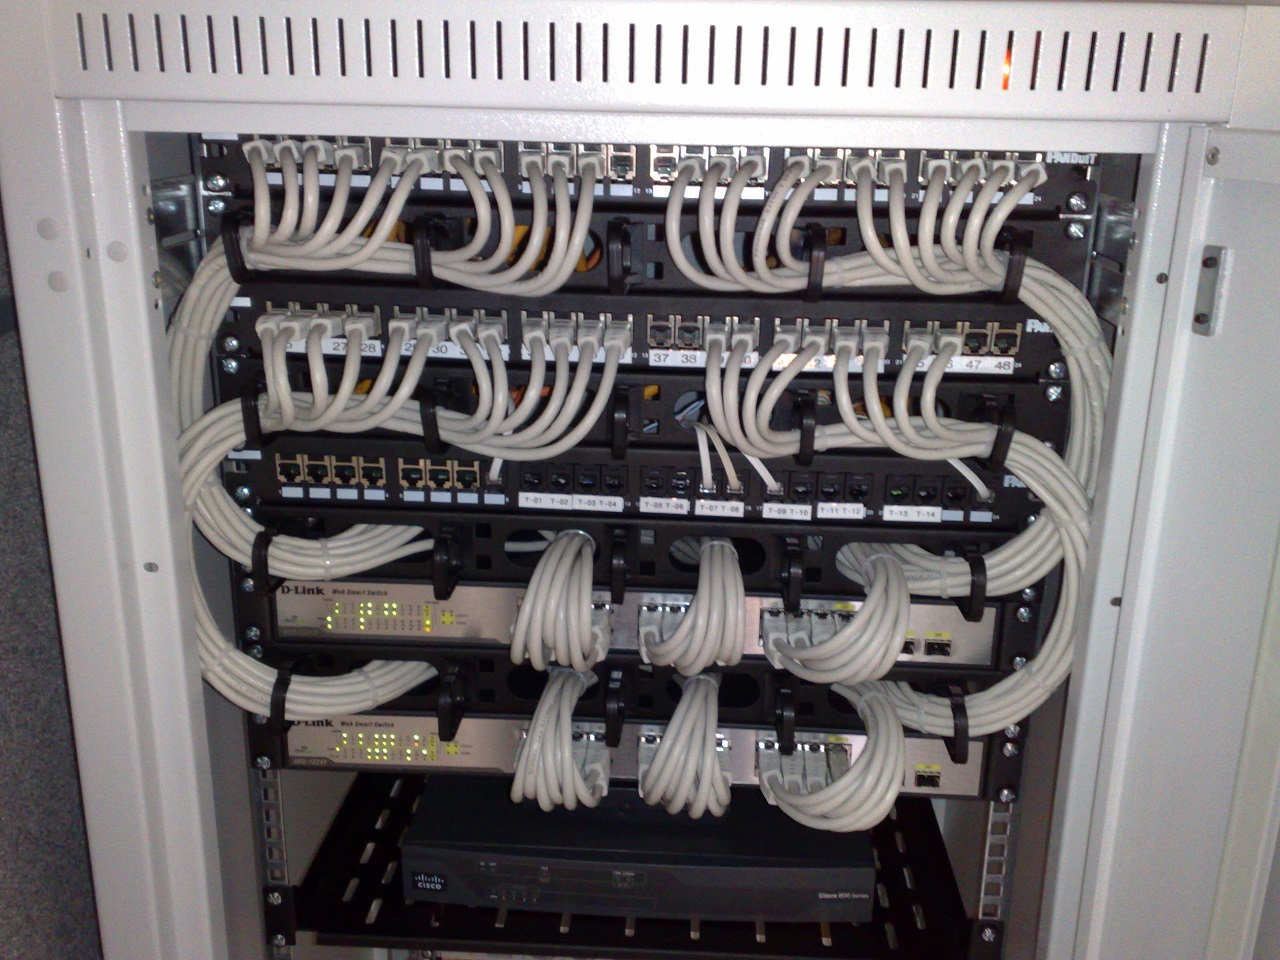 Network Interface Box Wiring Switch Wikipedia A Couple Of Managed D Link Gigabit Ethernet Rackmount Switches Connected To The Ports On Few Patch Panels Using Category 6 Cables All